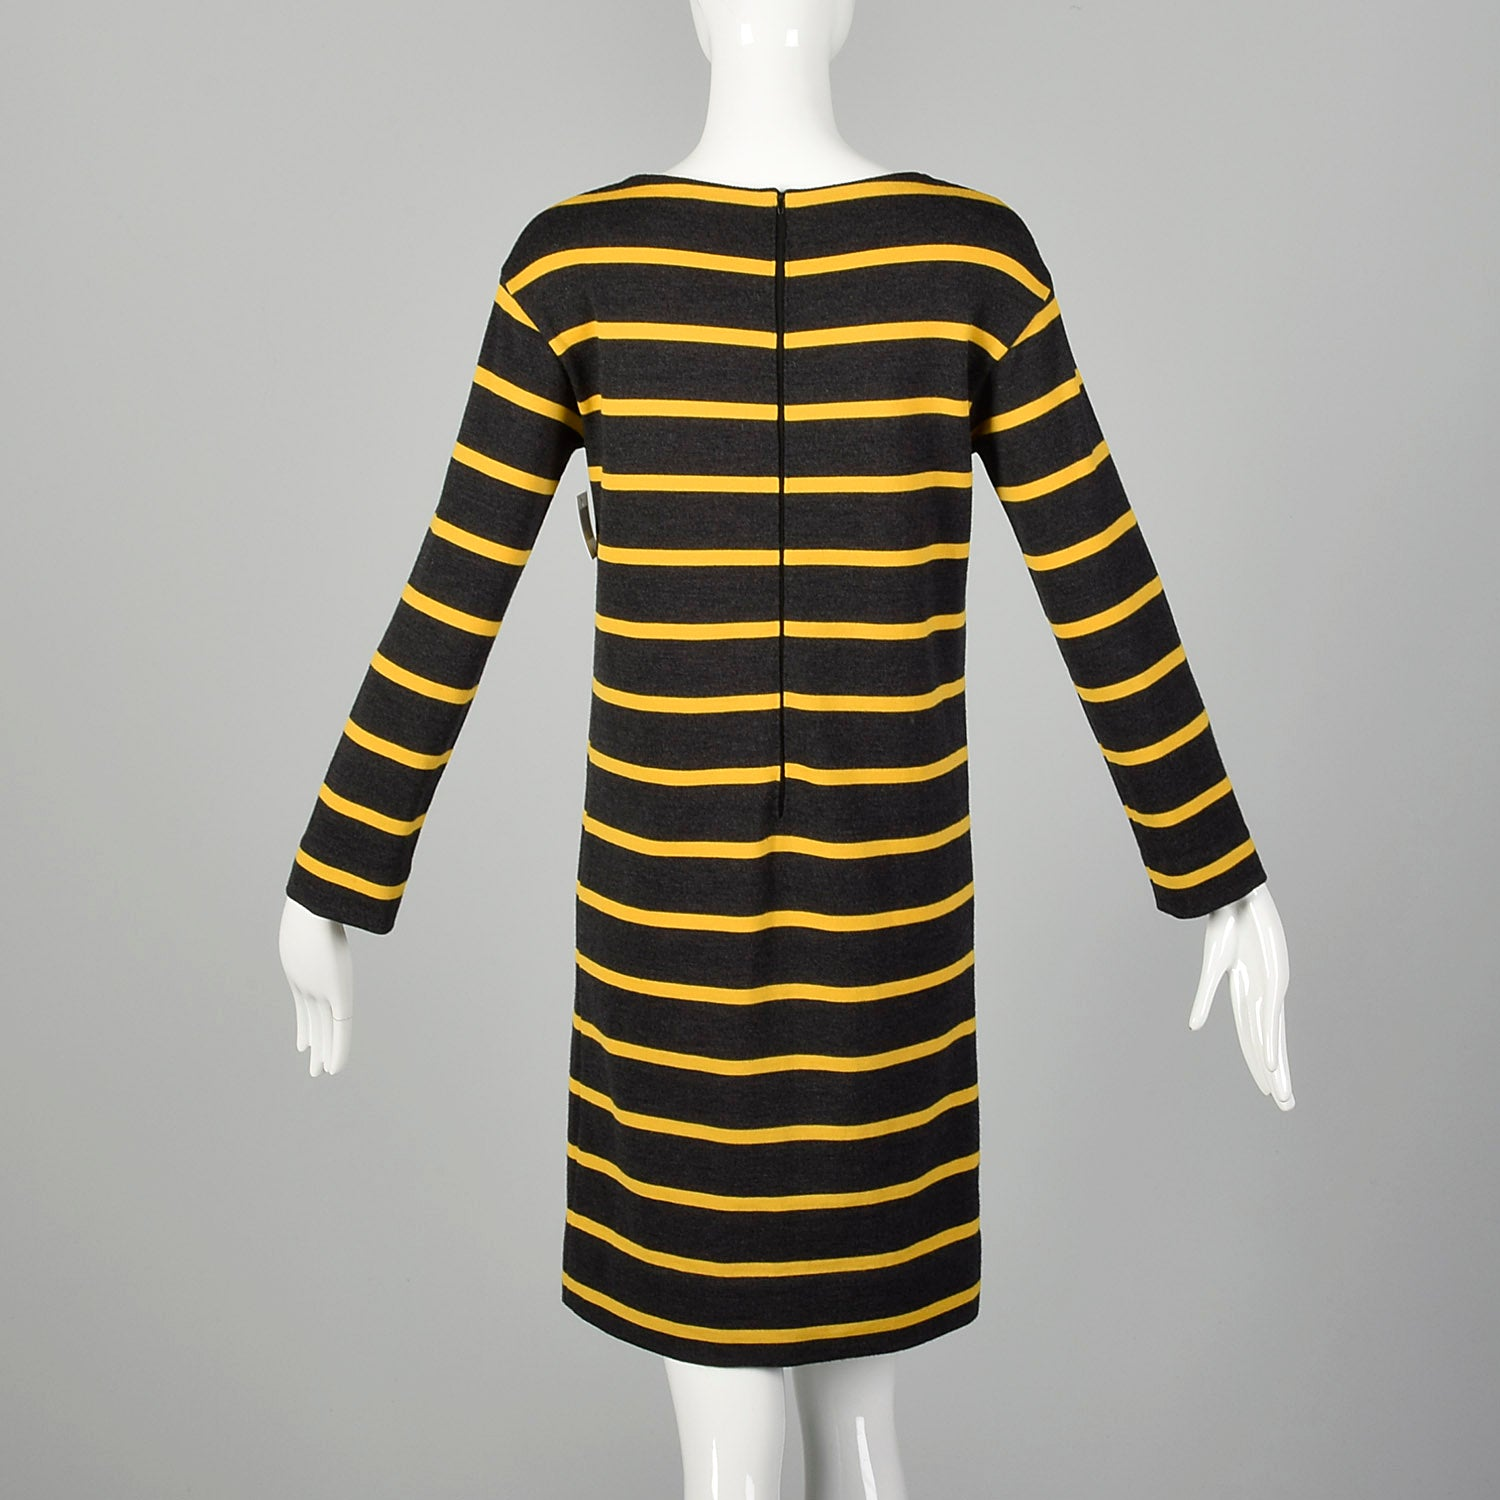 Small 1960s Goldworm Mod Striped Dress Long Sleeve Gray Yellow Knit